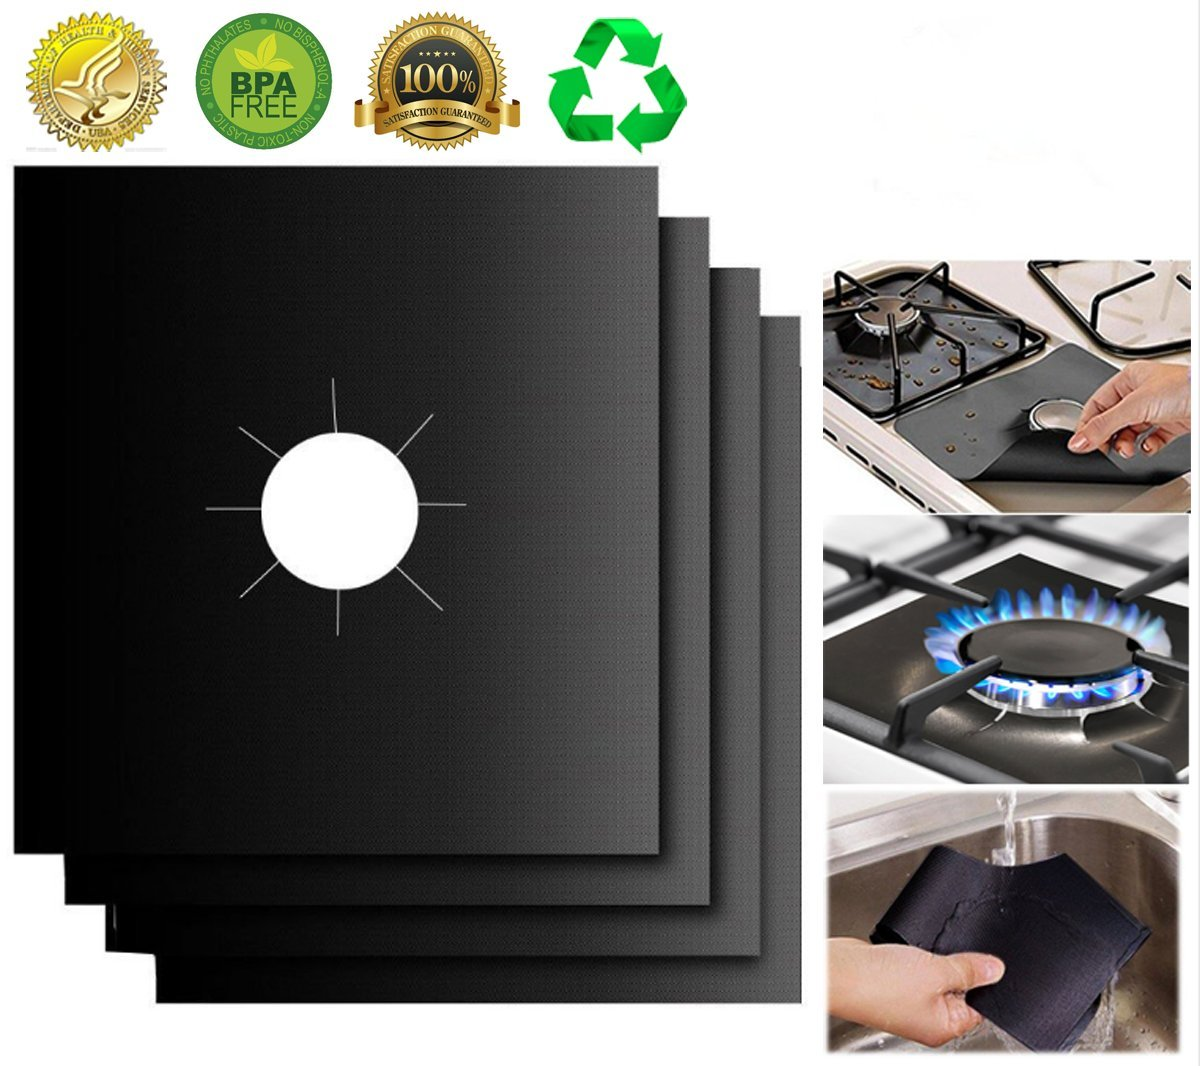 "XZSUN Gas Stove Burner Covers 10 Pack 0.2mm Double Thickness Reusable Gas Range Protectors for Kitchen&Cooking (10.6""x10.6"""